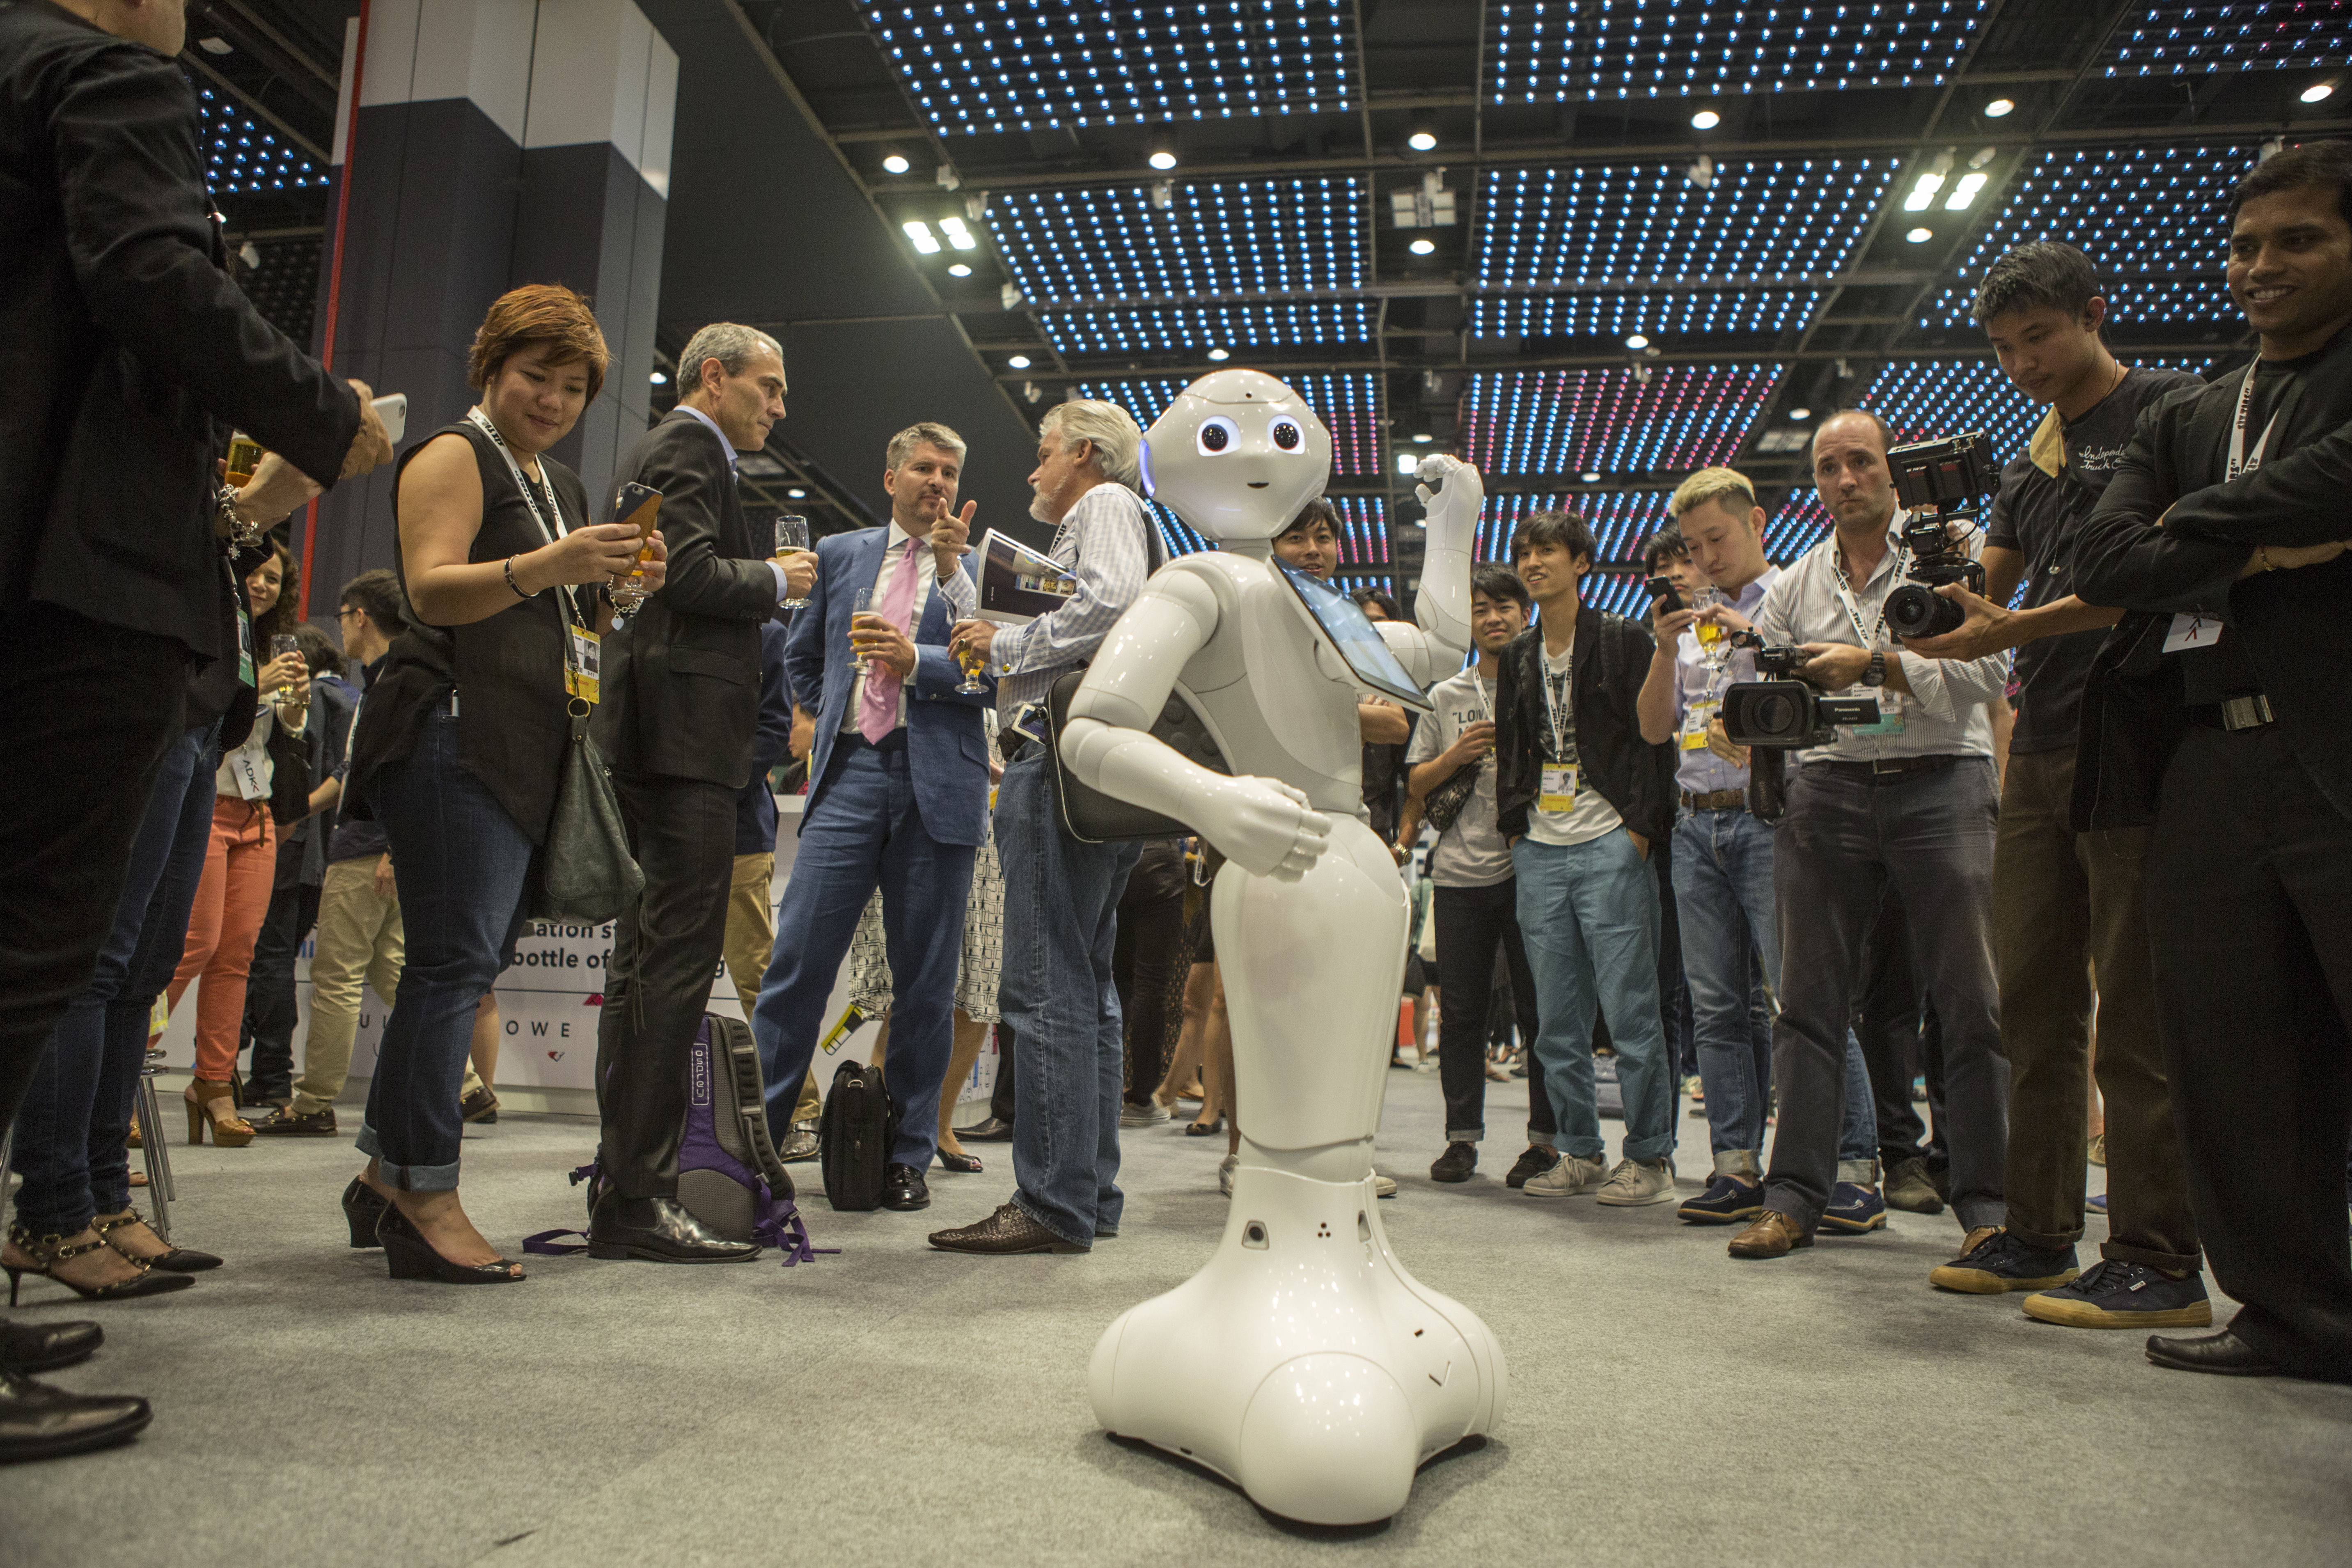 Pepper, pictured above, is a humanoid robot used in SoftBank stores in Japan to provide customer assistance.